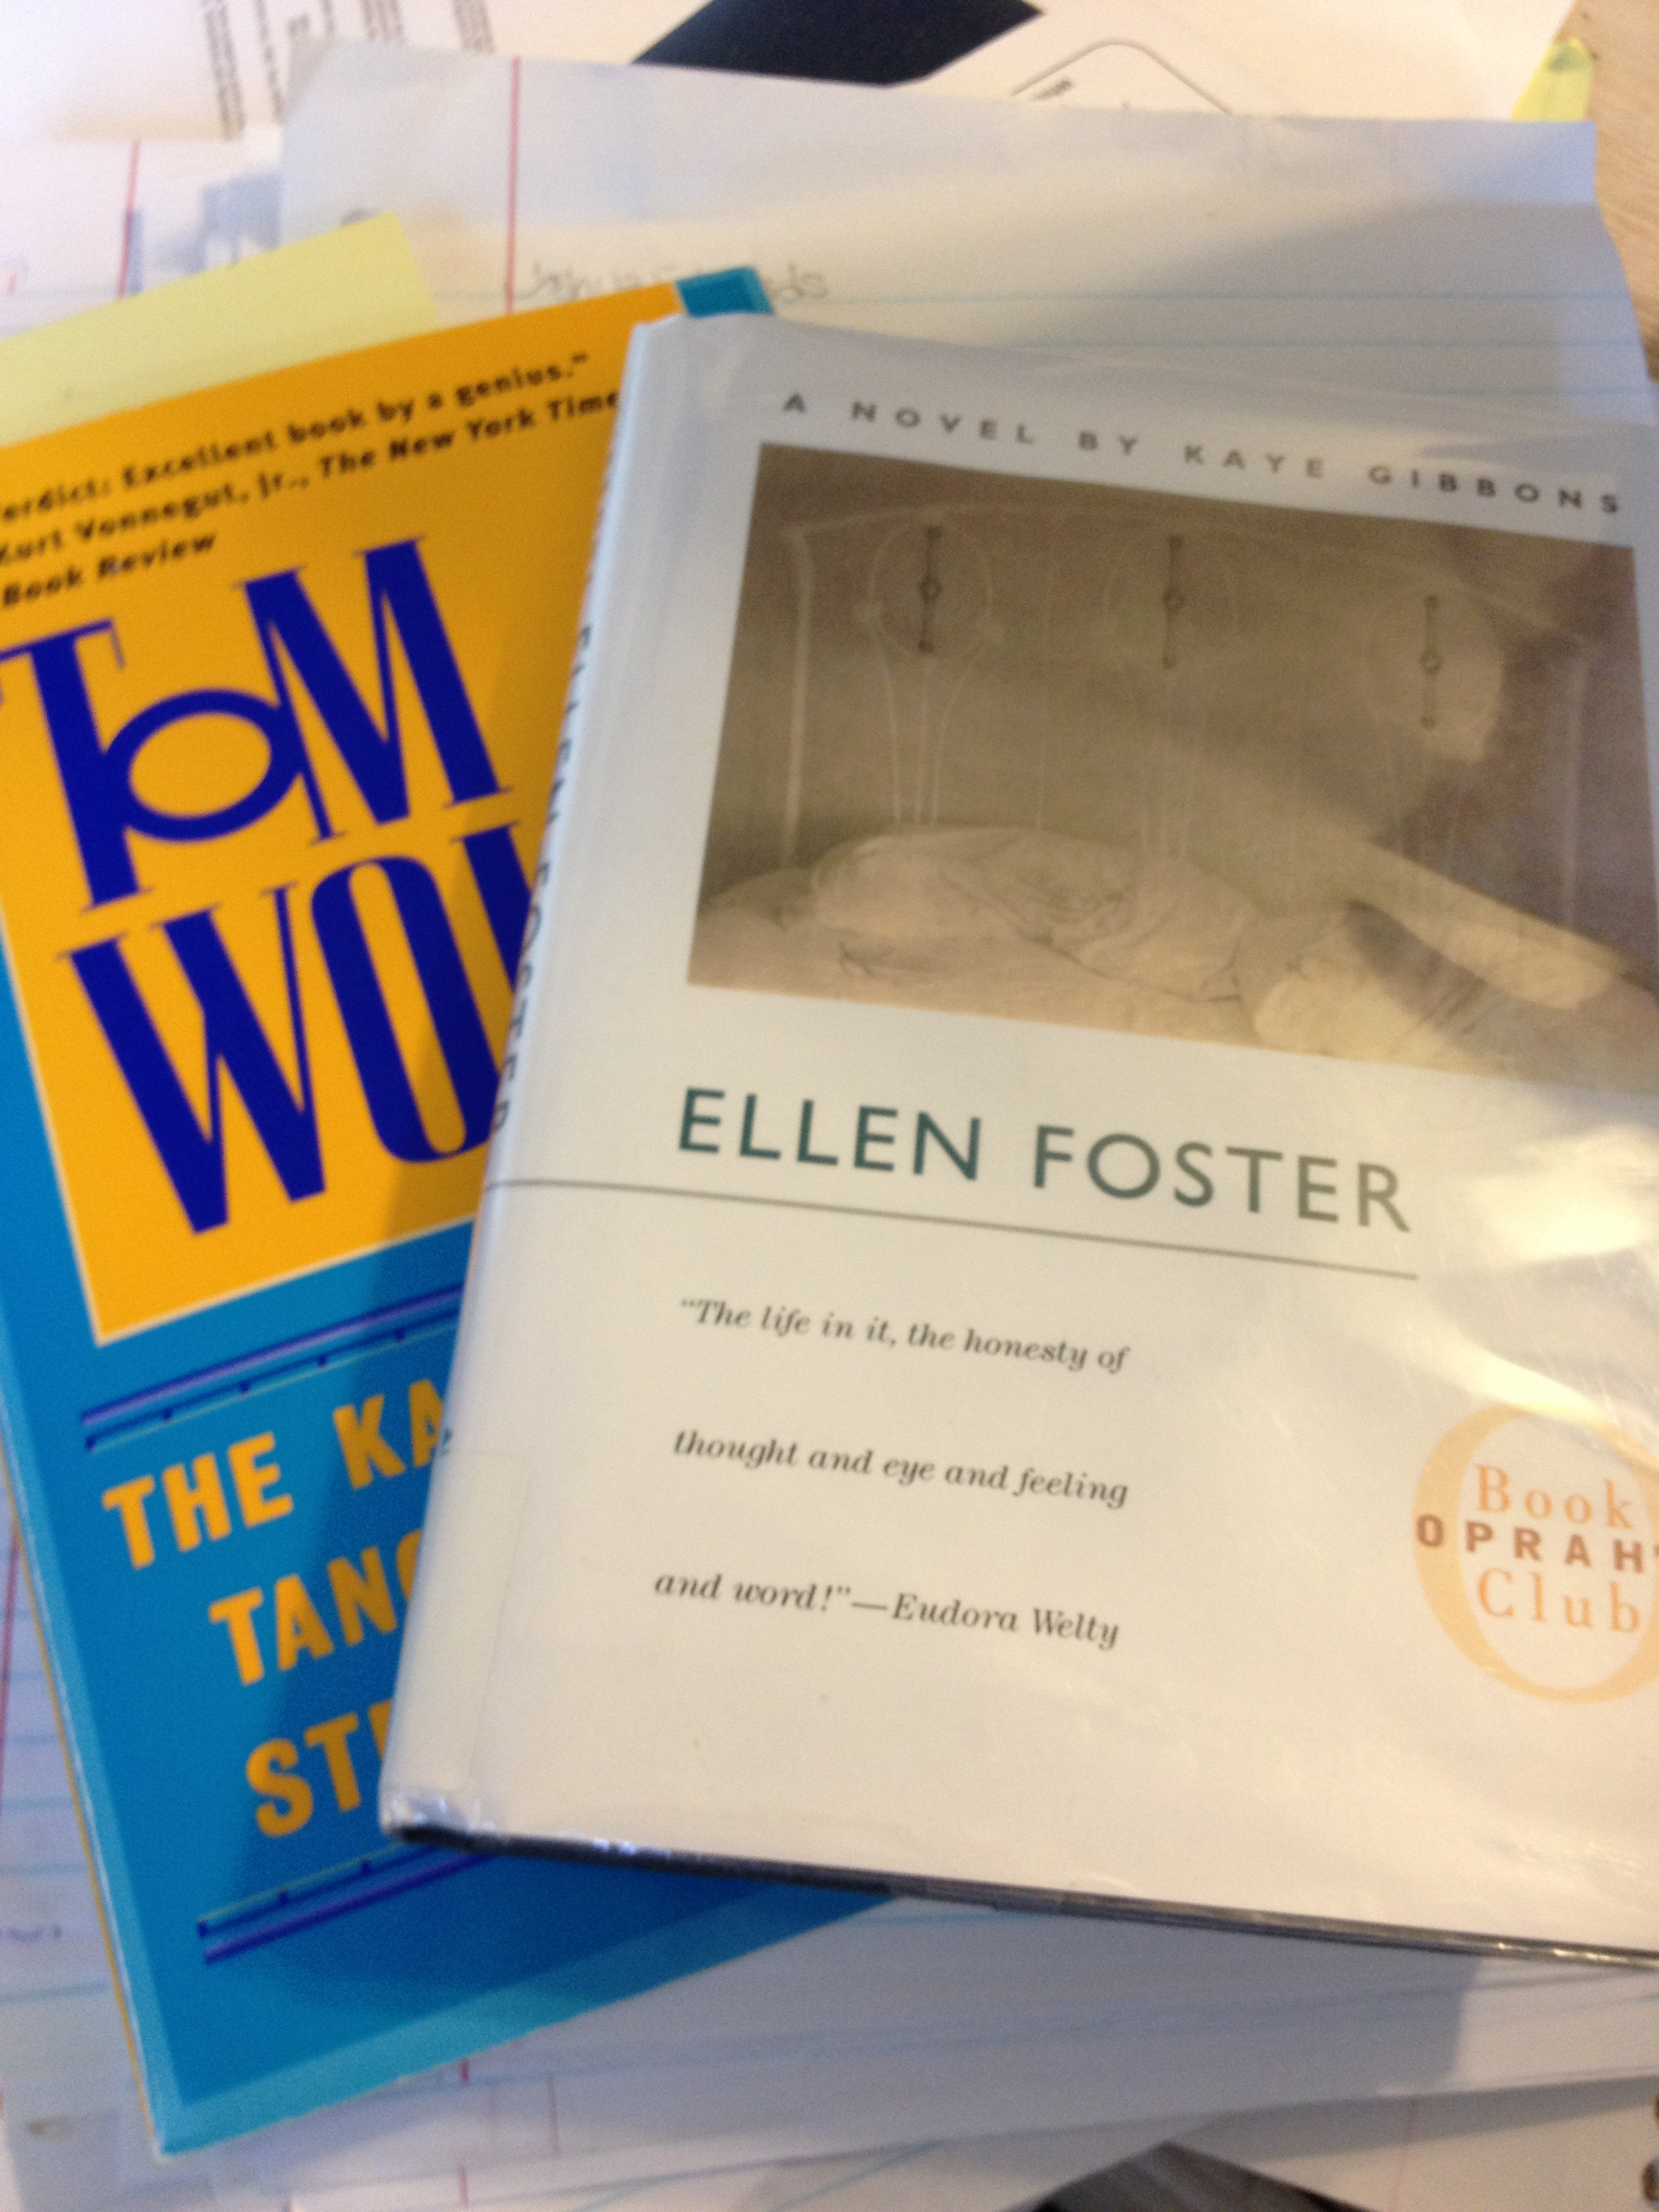 ellen foster essay questions Ellen foster ellen foster's story is one of movement, from alienation and loneliness to acceptance and belongingellen herself effects this major change by force of.